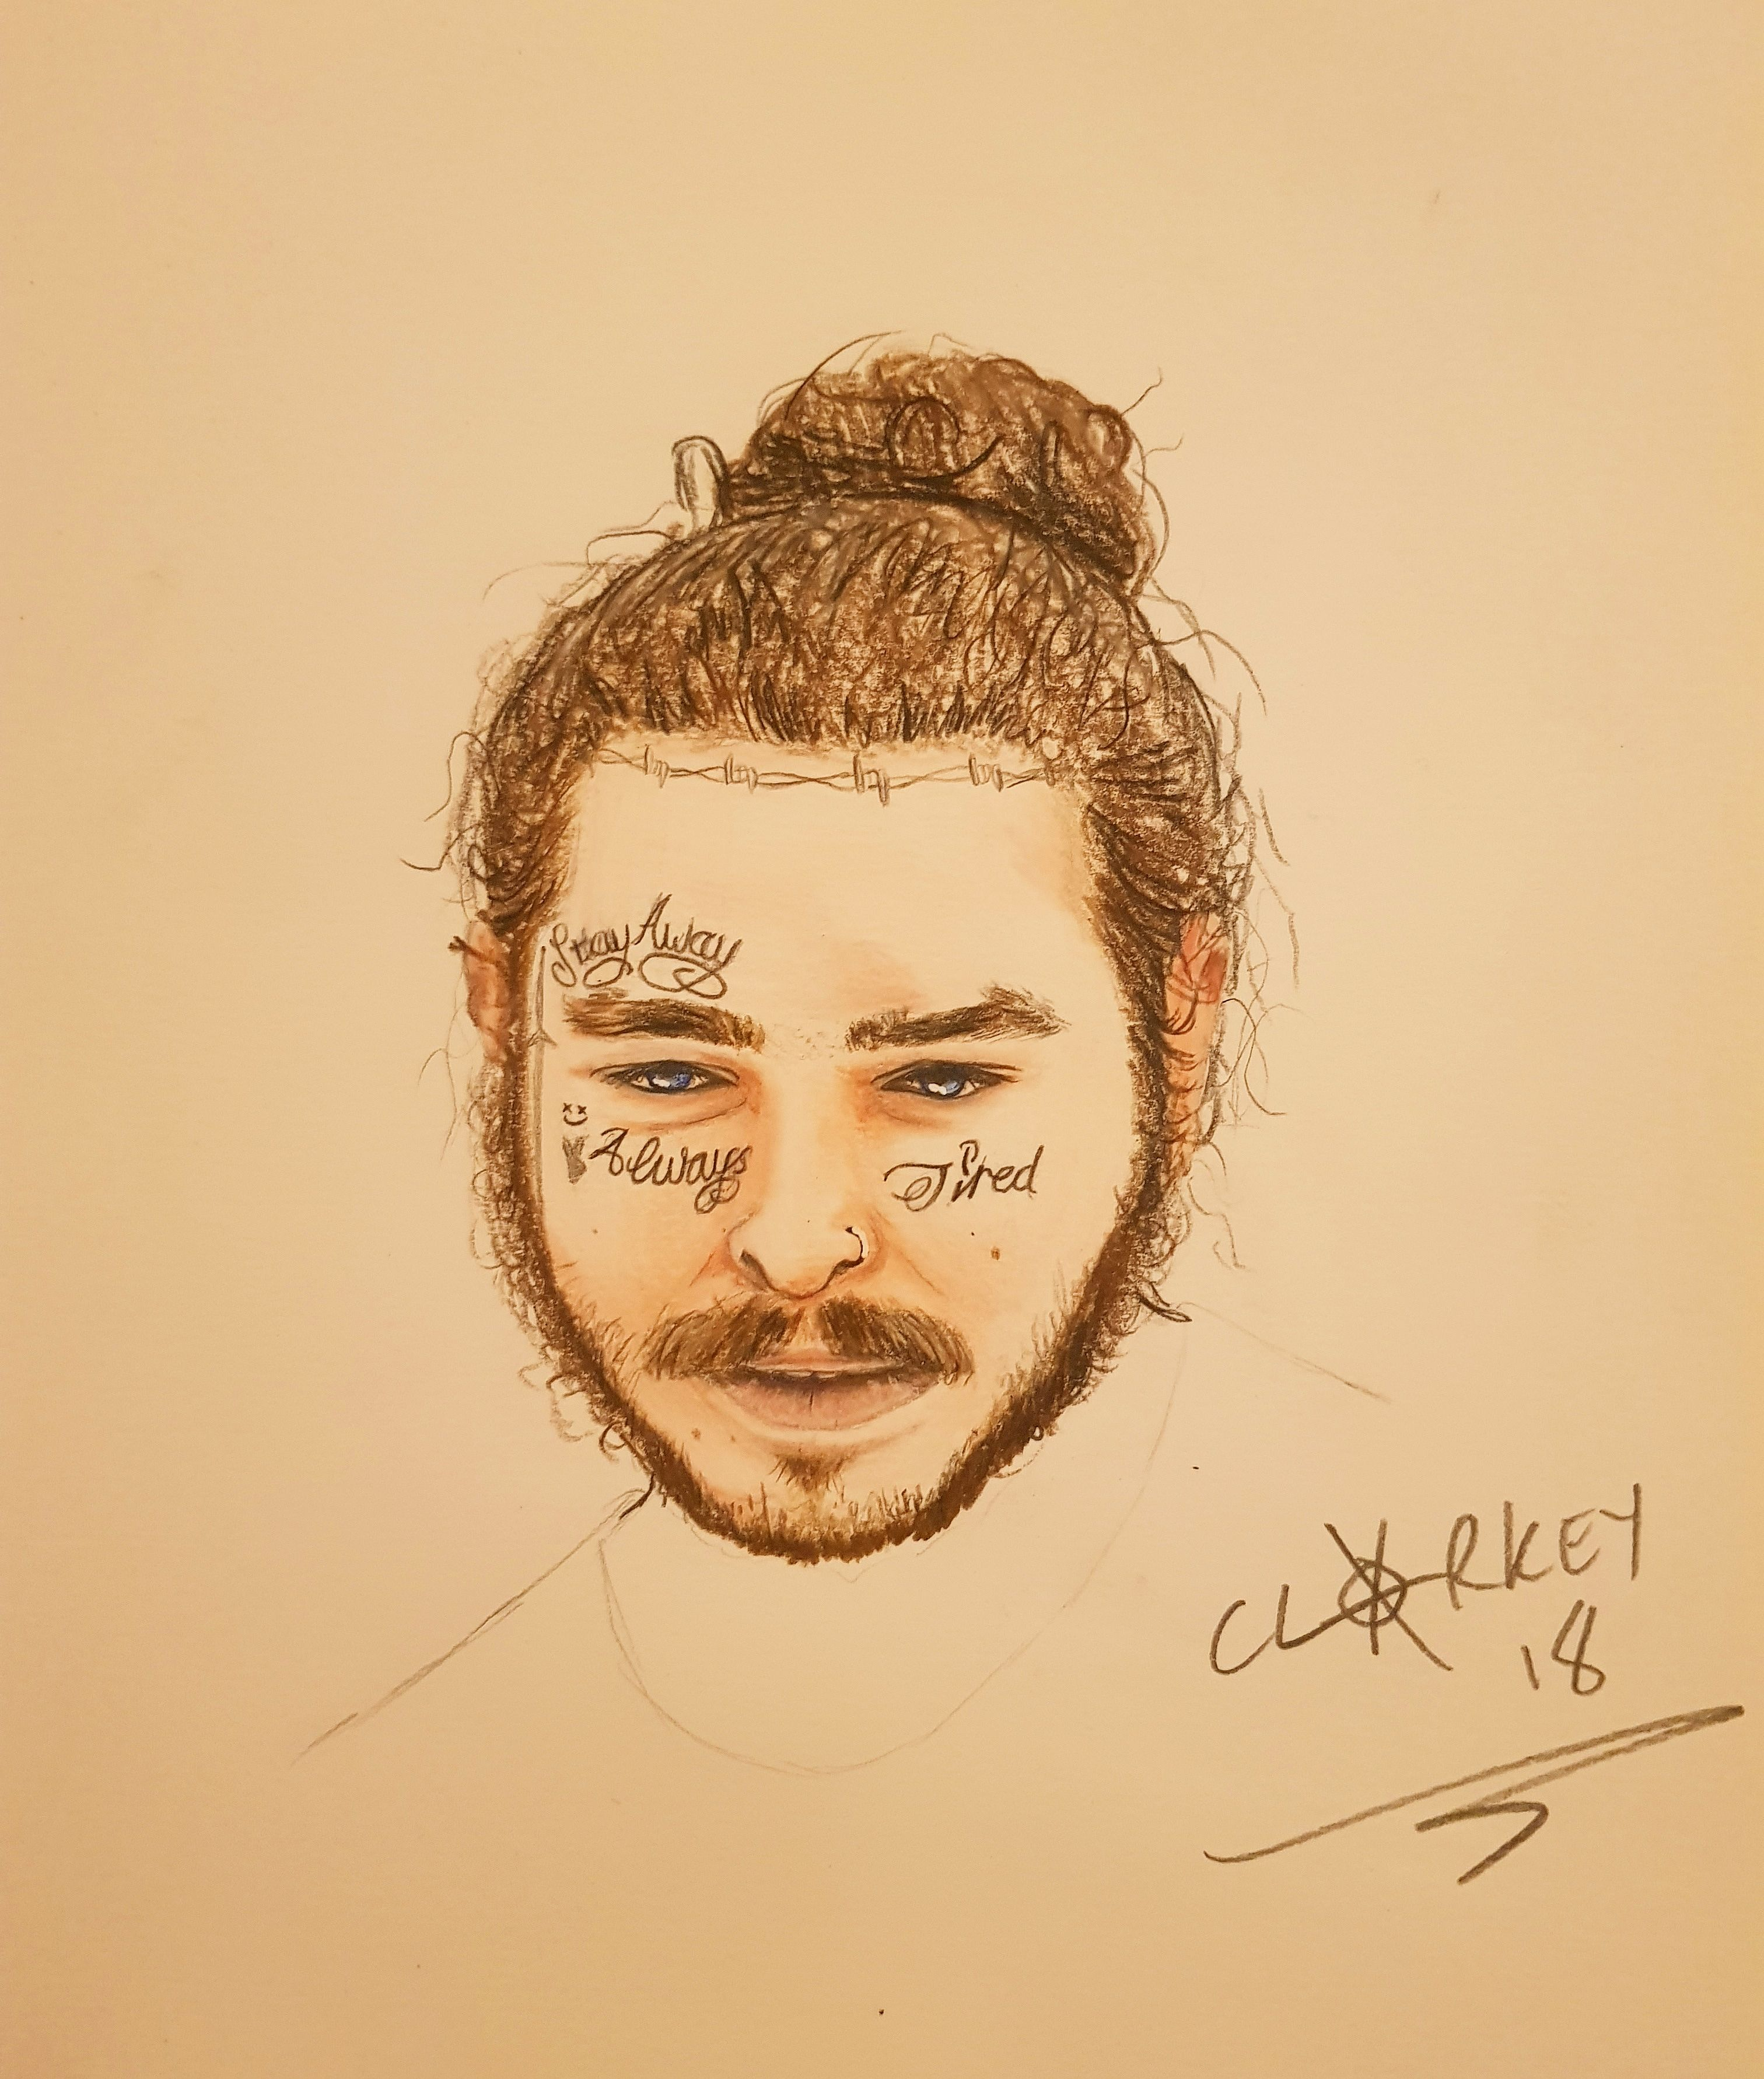 Post Malone Polychromos Prismacolor Pencils 11x8 Art In X8 Kendrick T Shirt Size M